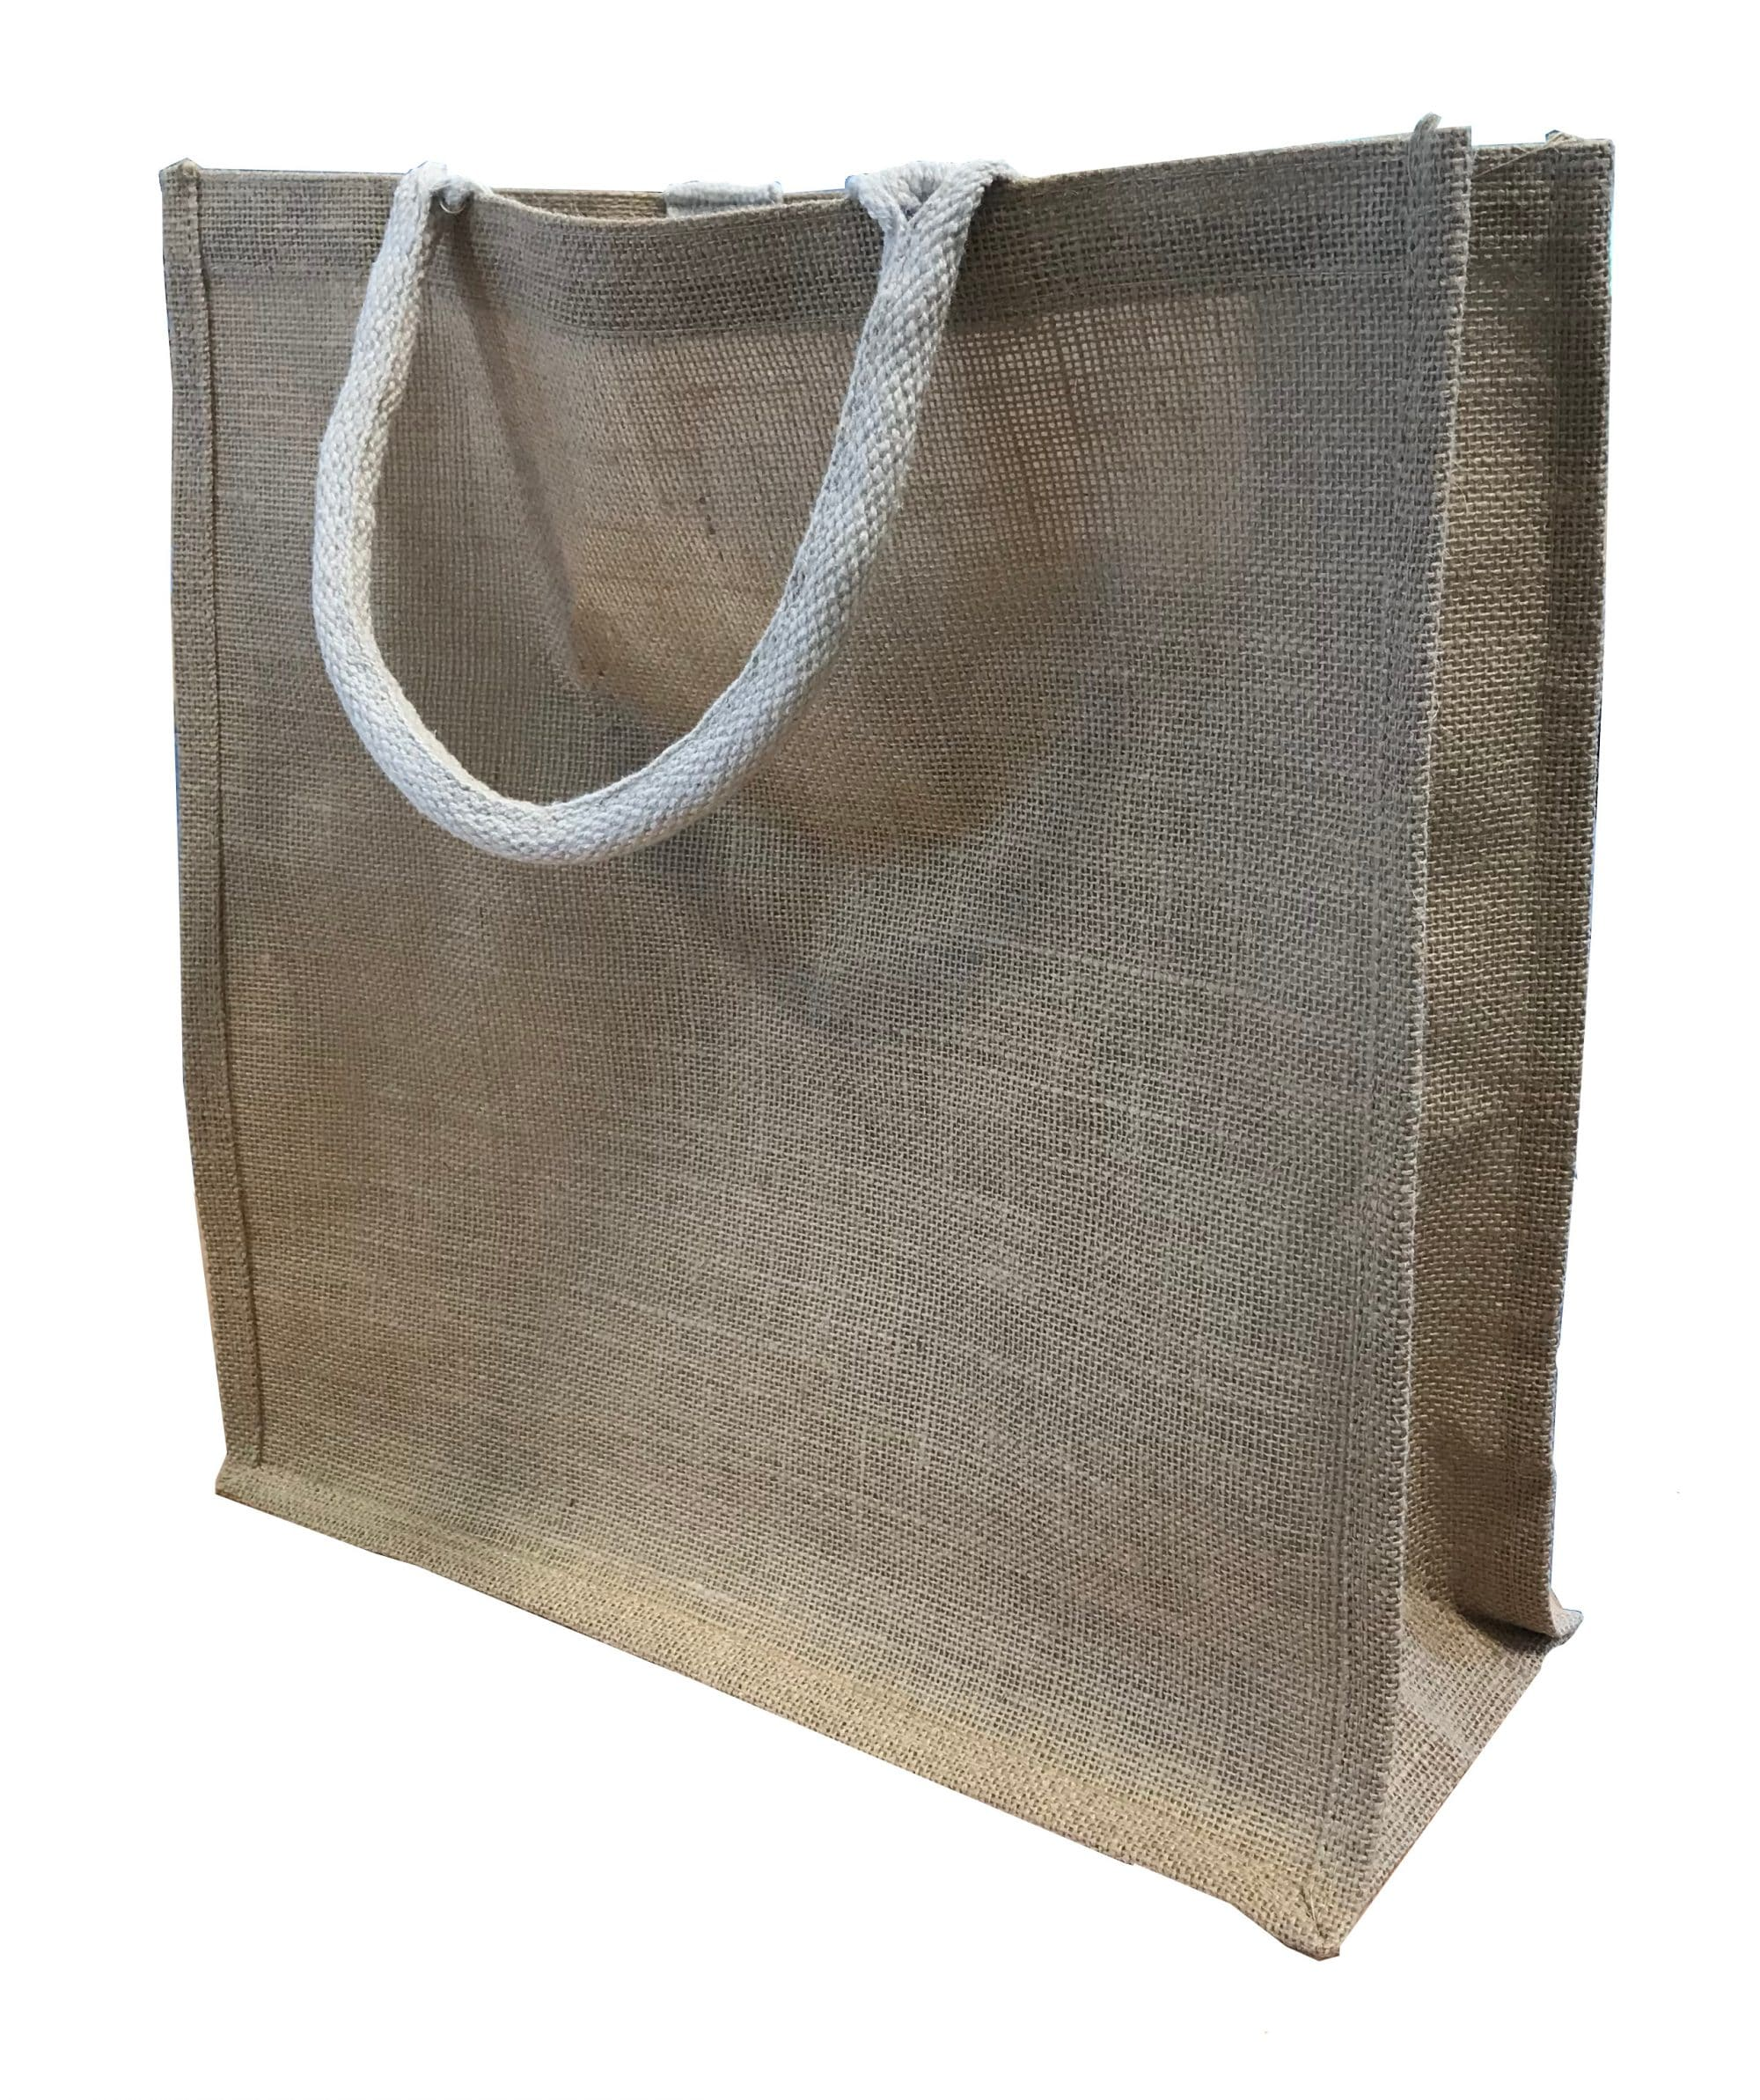 Natural Jute Bag Bag for Life re-usable shopping bag